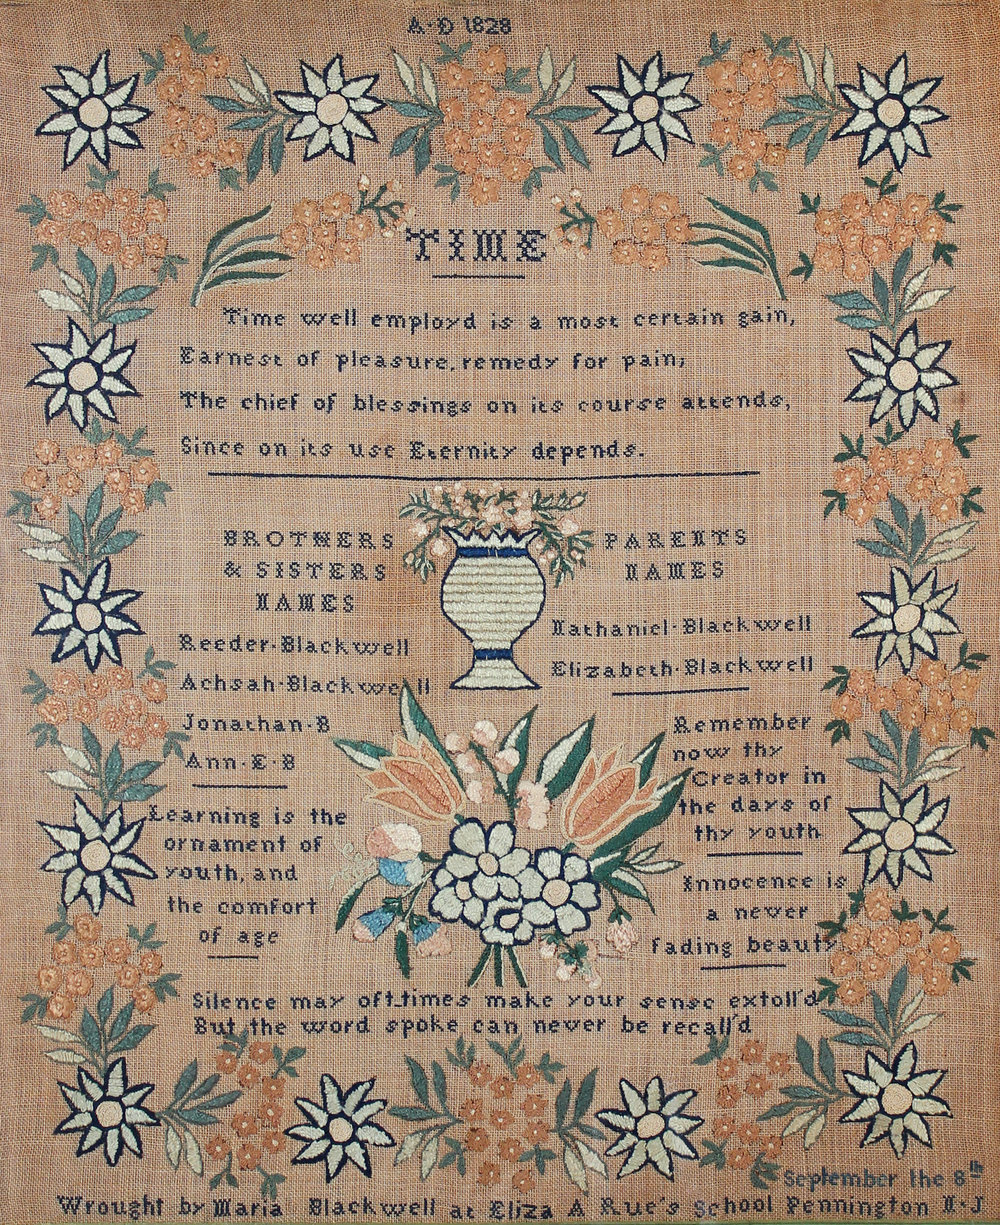 Image Credit: Needlework by Maria Blackwell, Hopewell Township, New Jersey, 1828. Deborah (Shellenberger) Niederer & Randy Niederer.